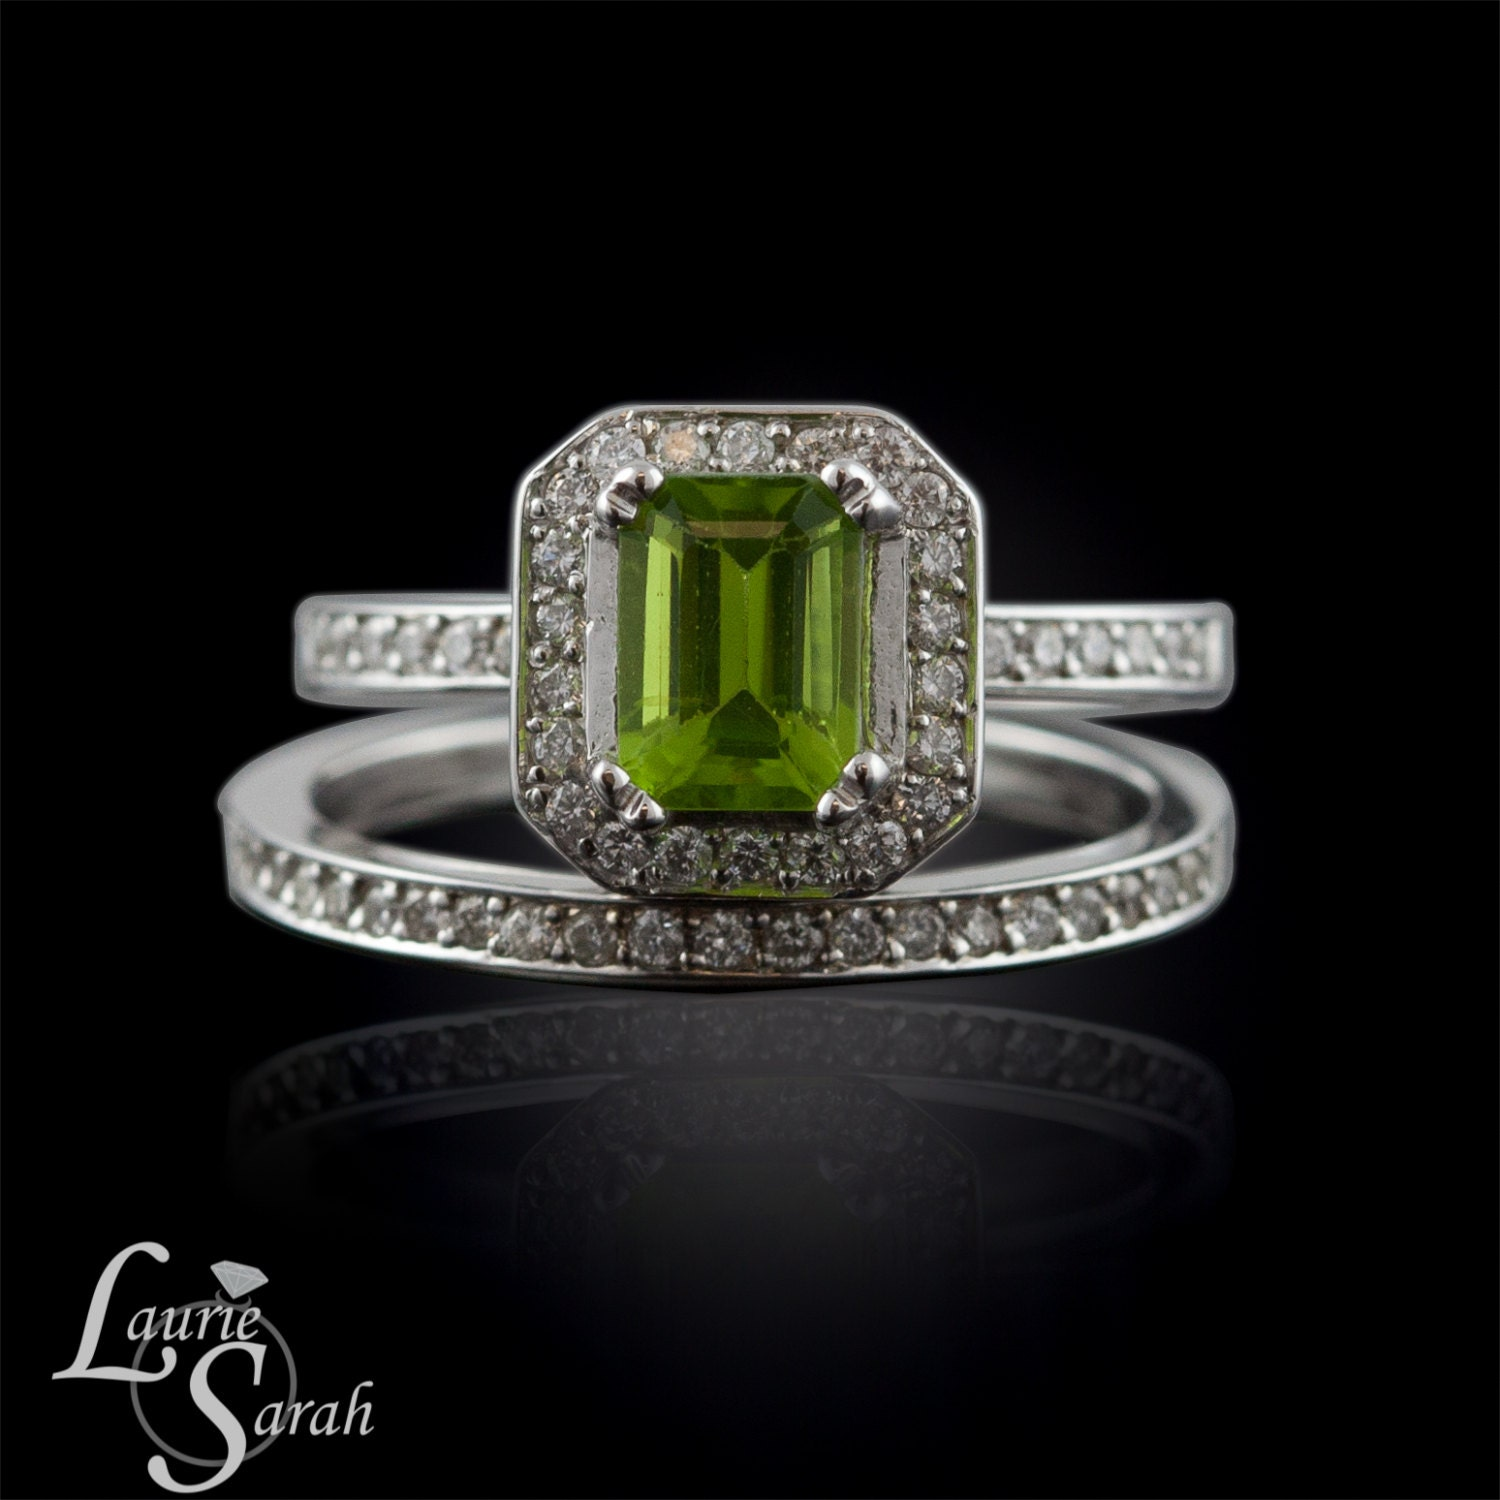 Wedding ring set with peridot and diamond engagement ring and for Peridot wedding ring set